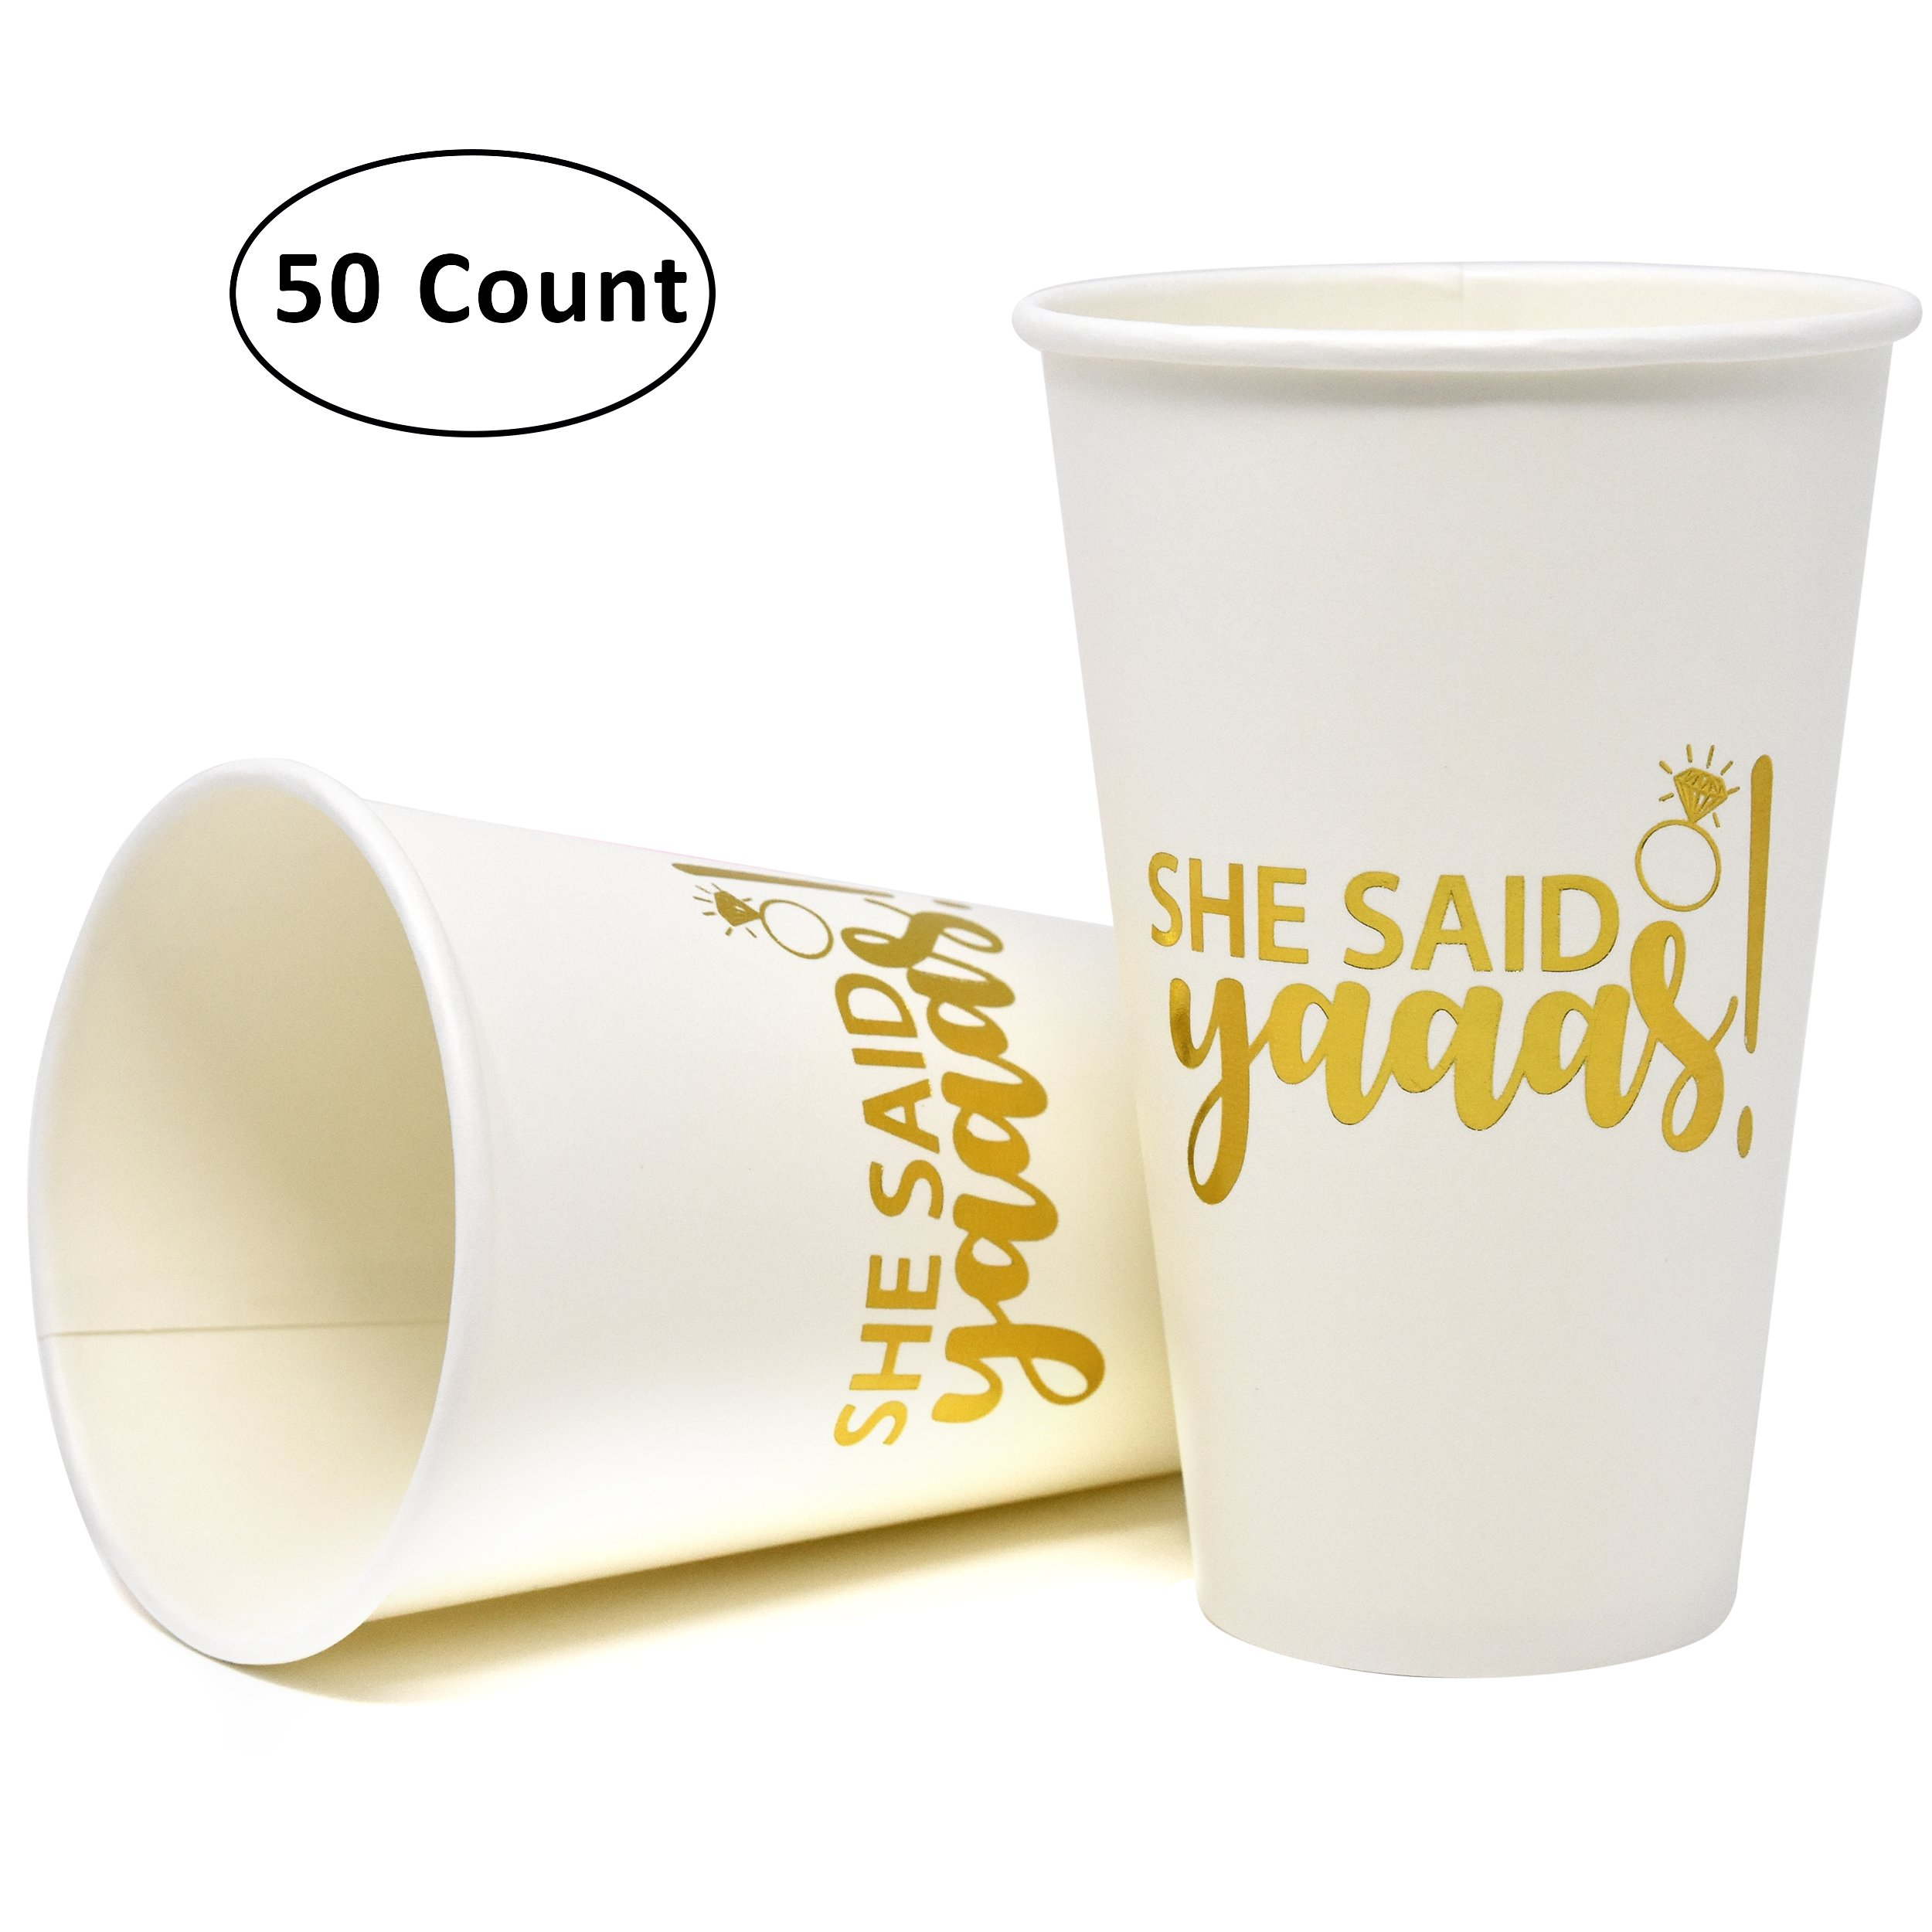 She Said Yaaas Bachelorette Party Cups 50 Count, 16 oz. Gold Foil on White Disposable Paper Cups for Bridal Shower Decorations Favor Supplies Engagement Wedding Bridesmaid Team and Bride to Be Gift